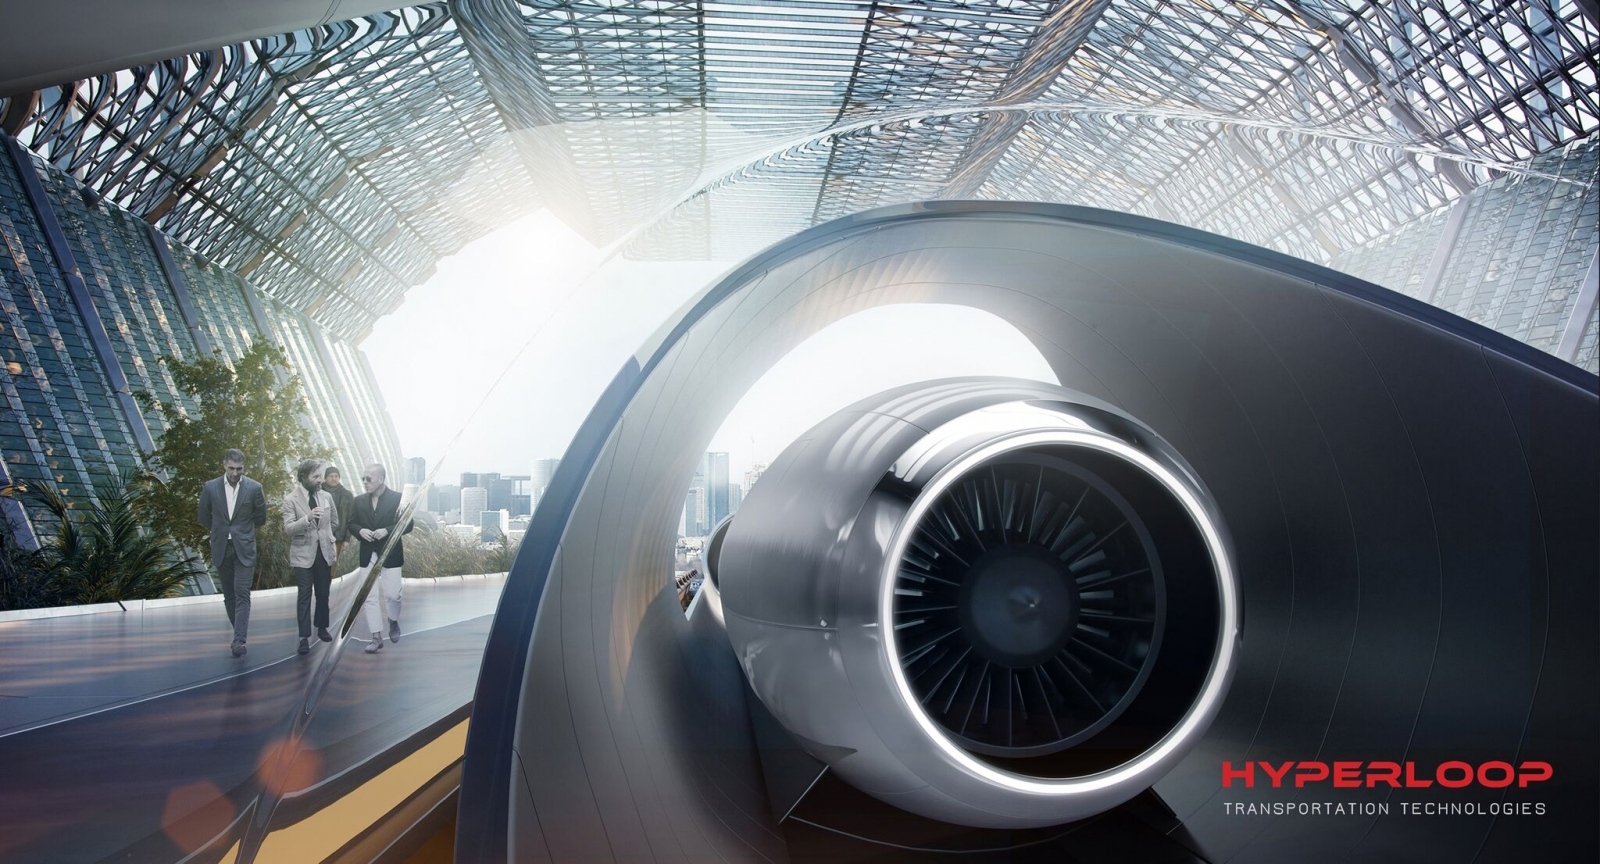 South Korea signs deal with Hyperloop Transportation Technologies